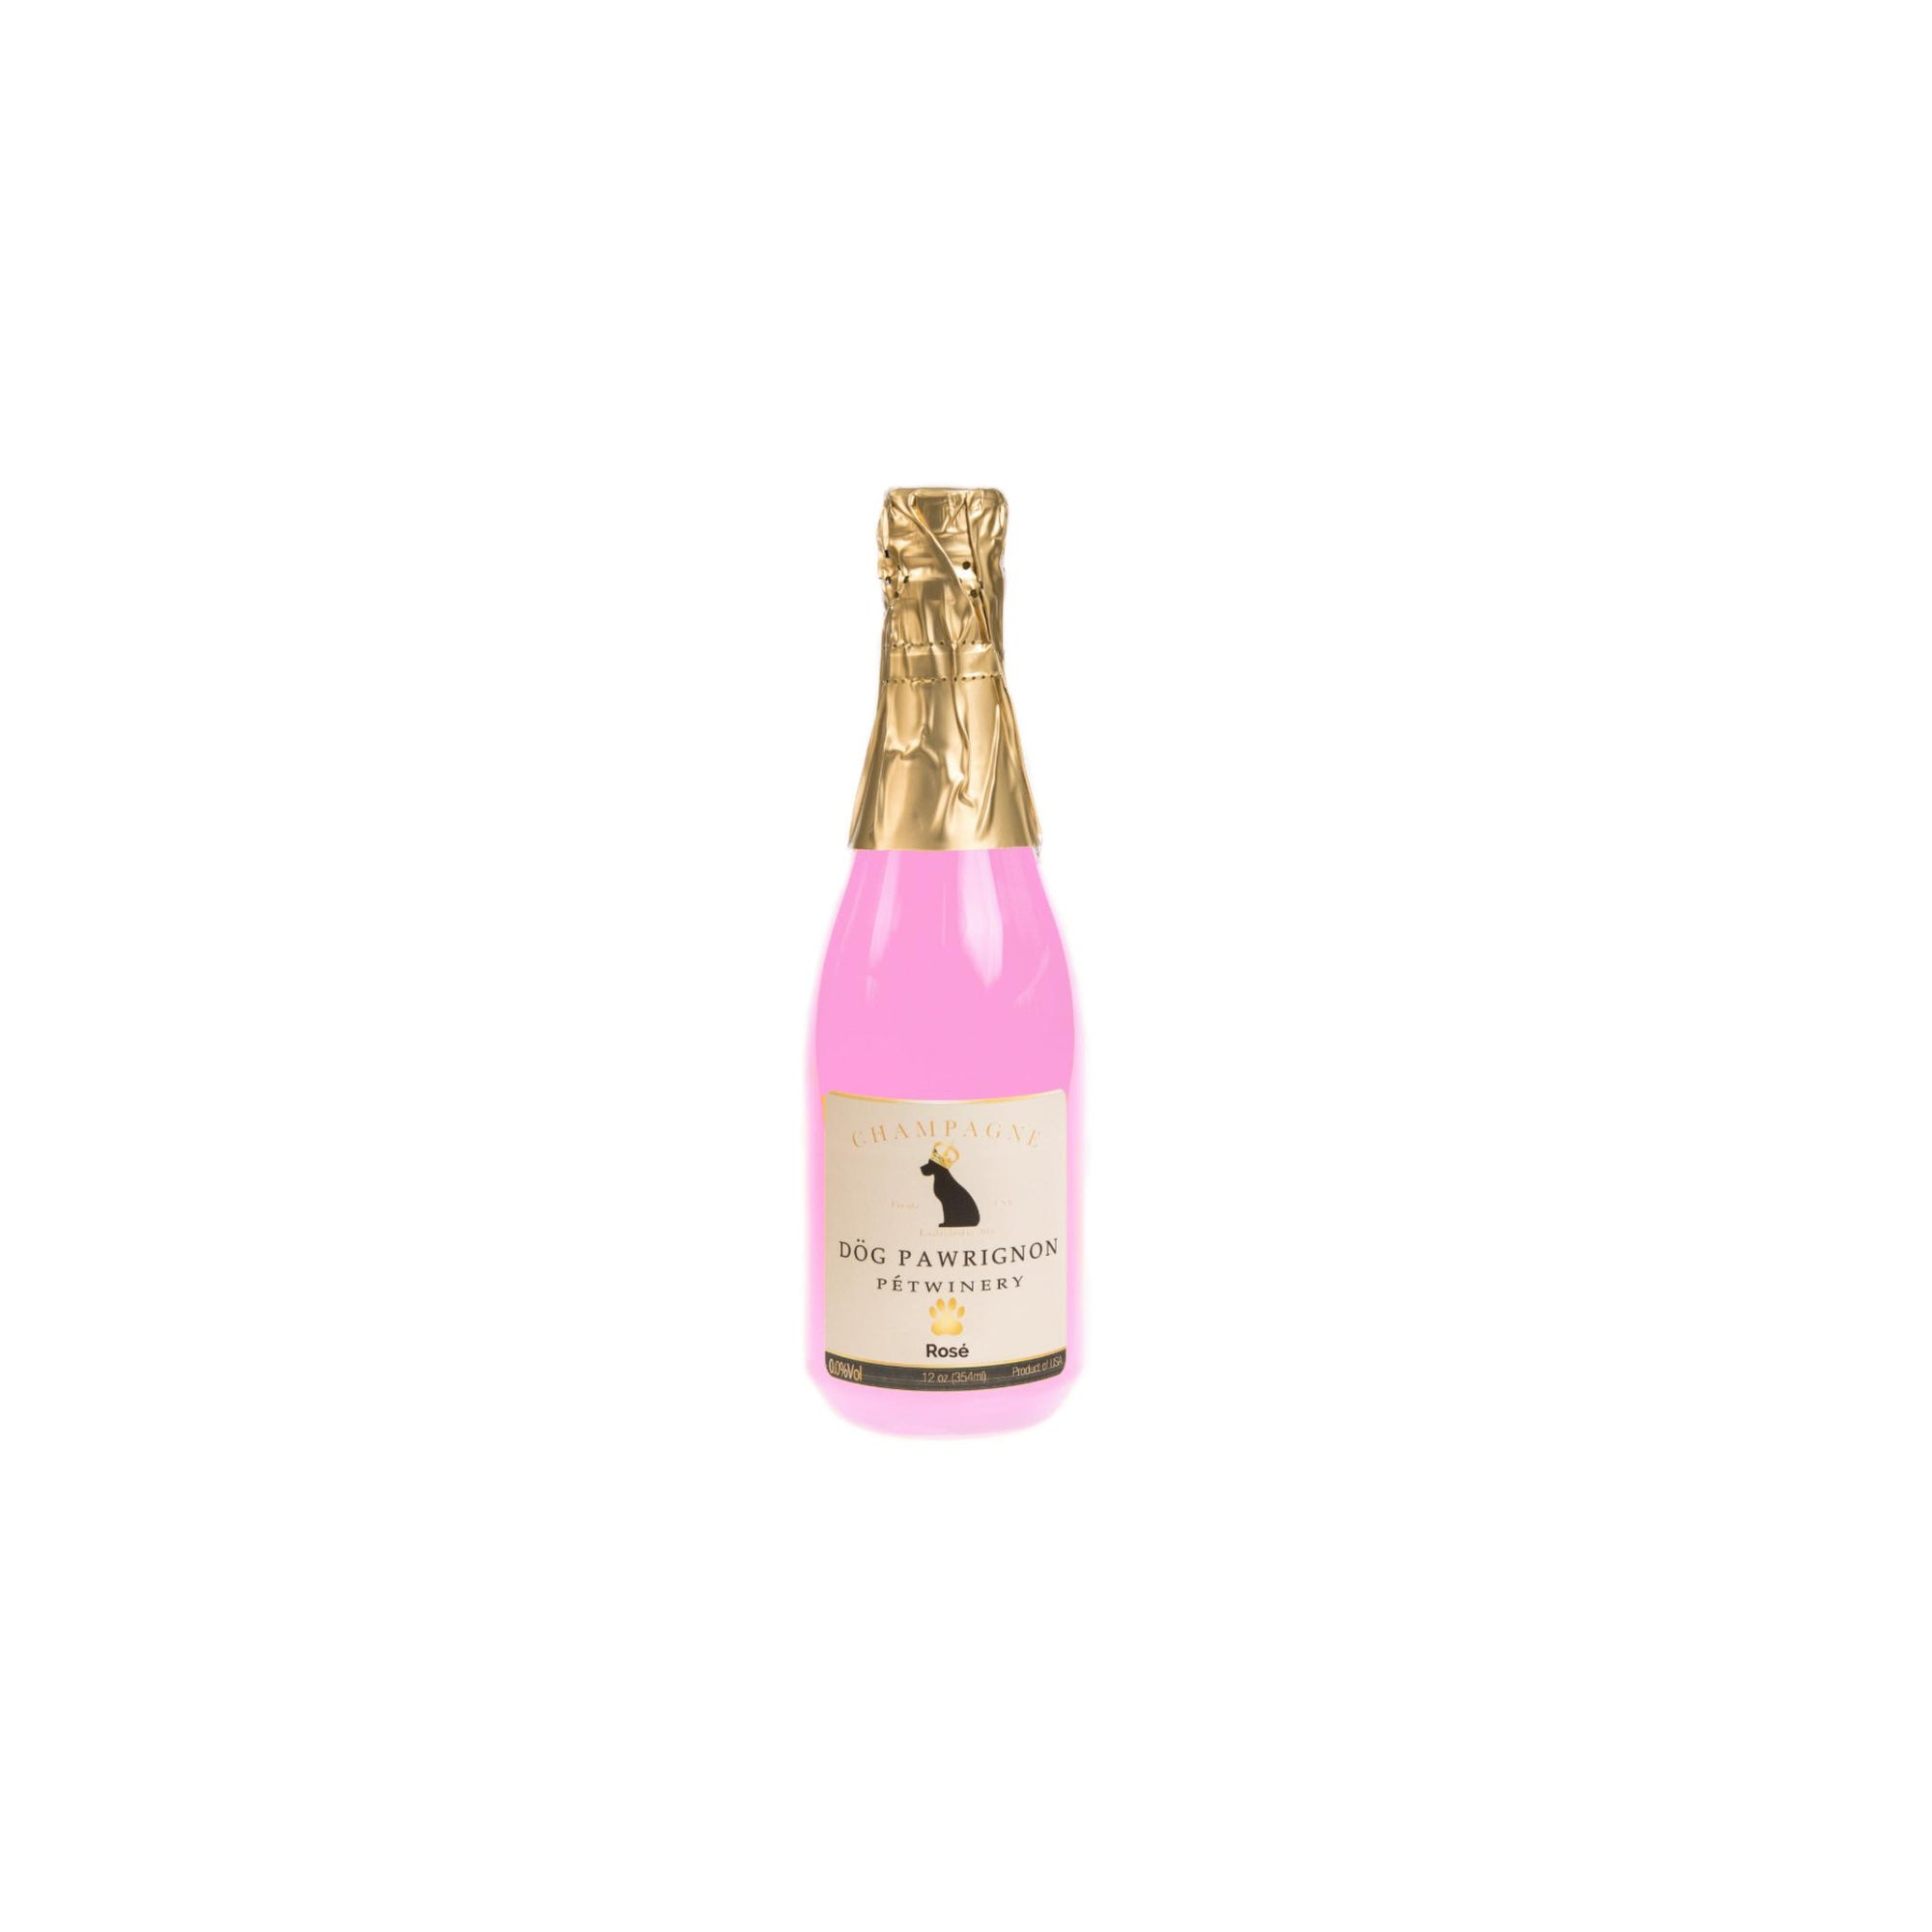 Dog Champagne - 12 oz Dög Pawrignon Rosé-Add-On-Gift Spawt